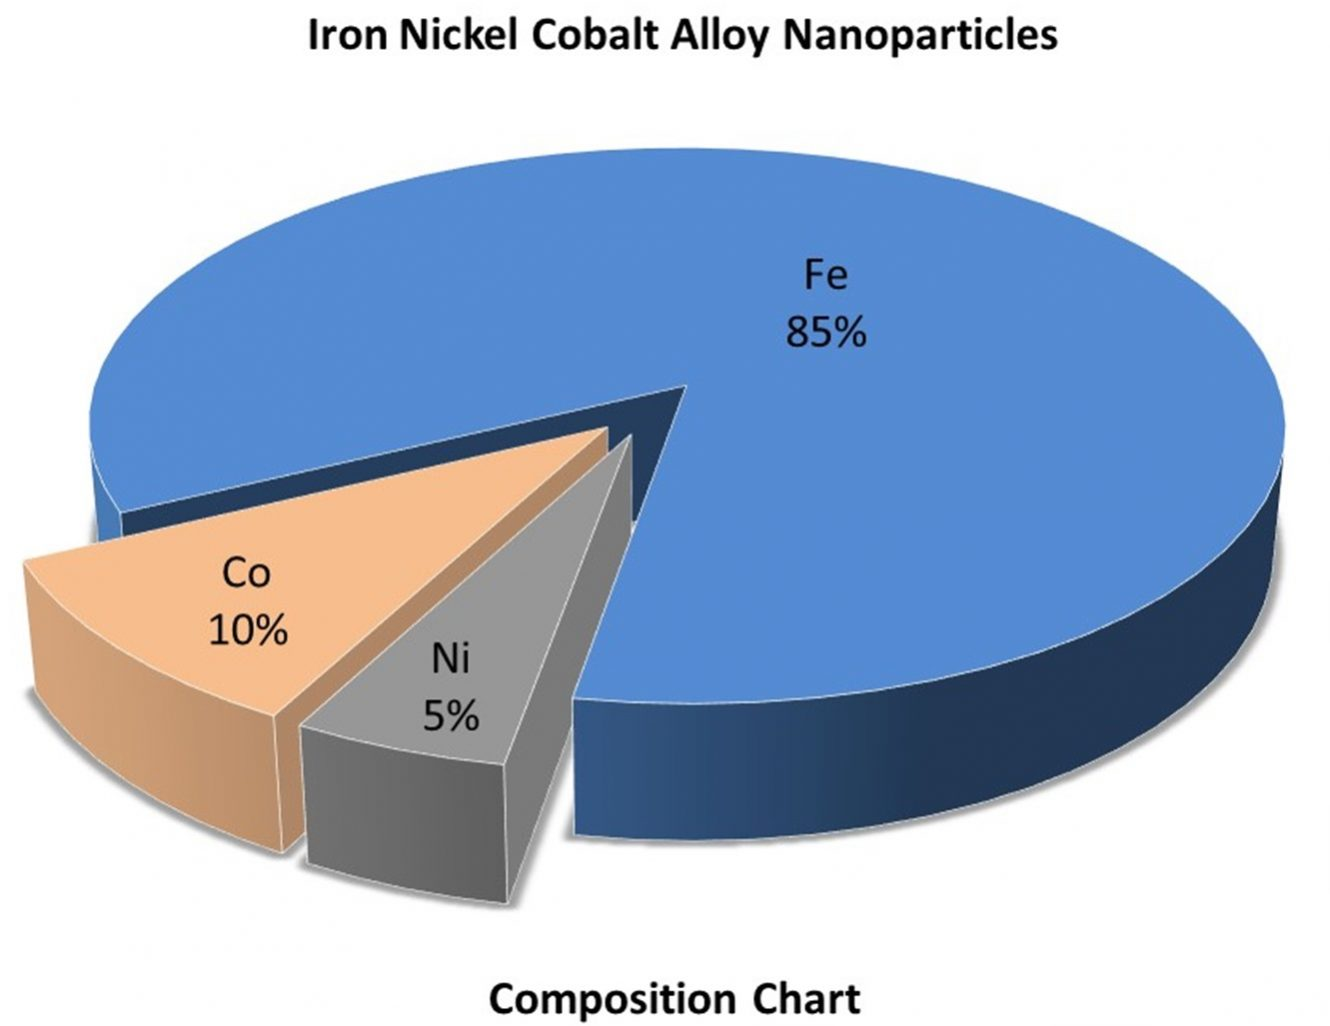 Iron Nickel Cobalt Alloy Nanoparticles